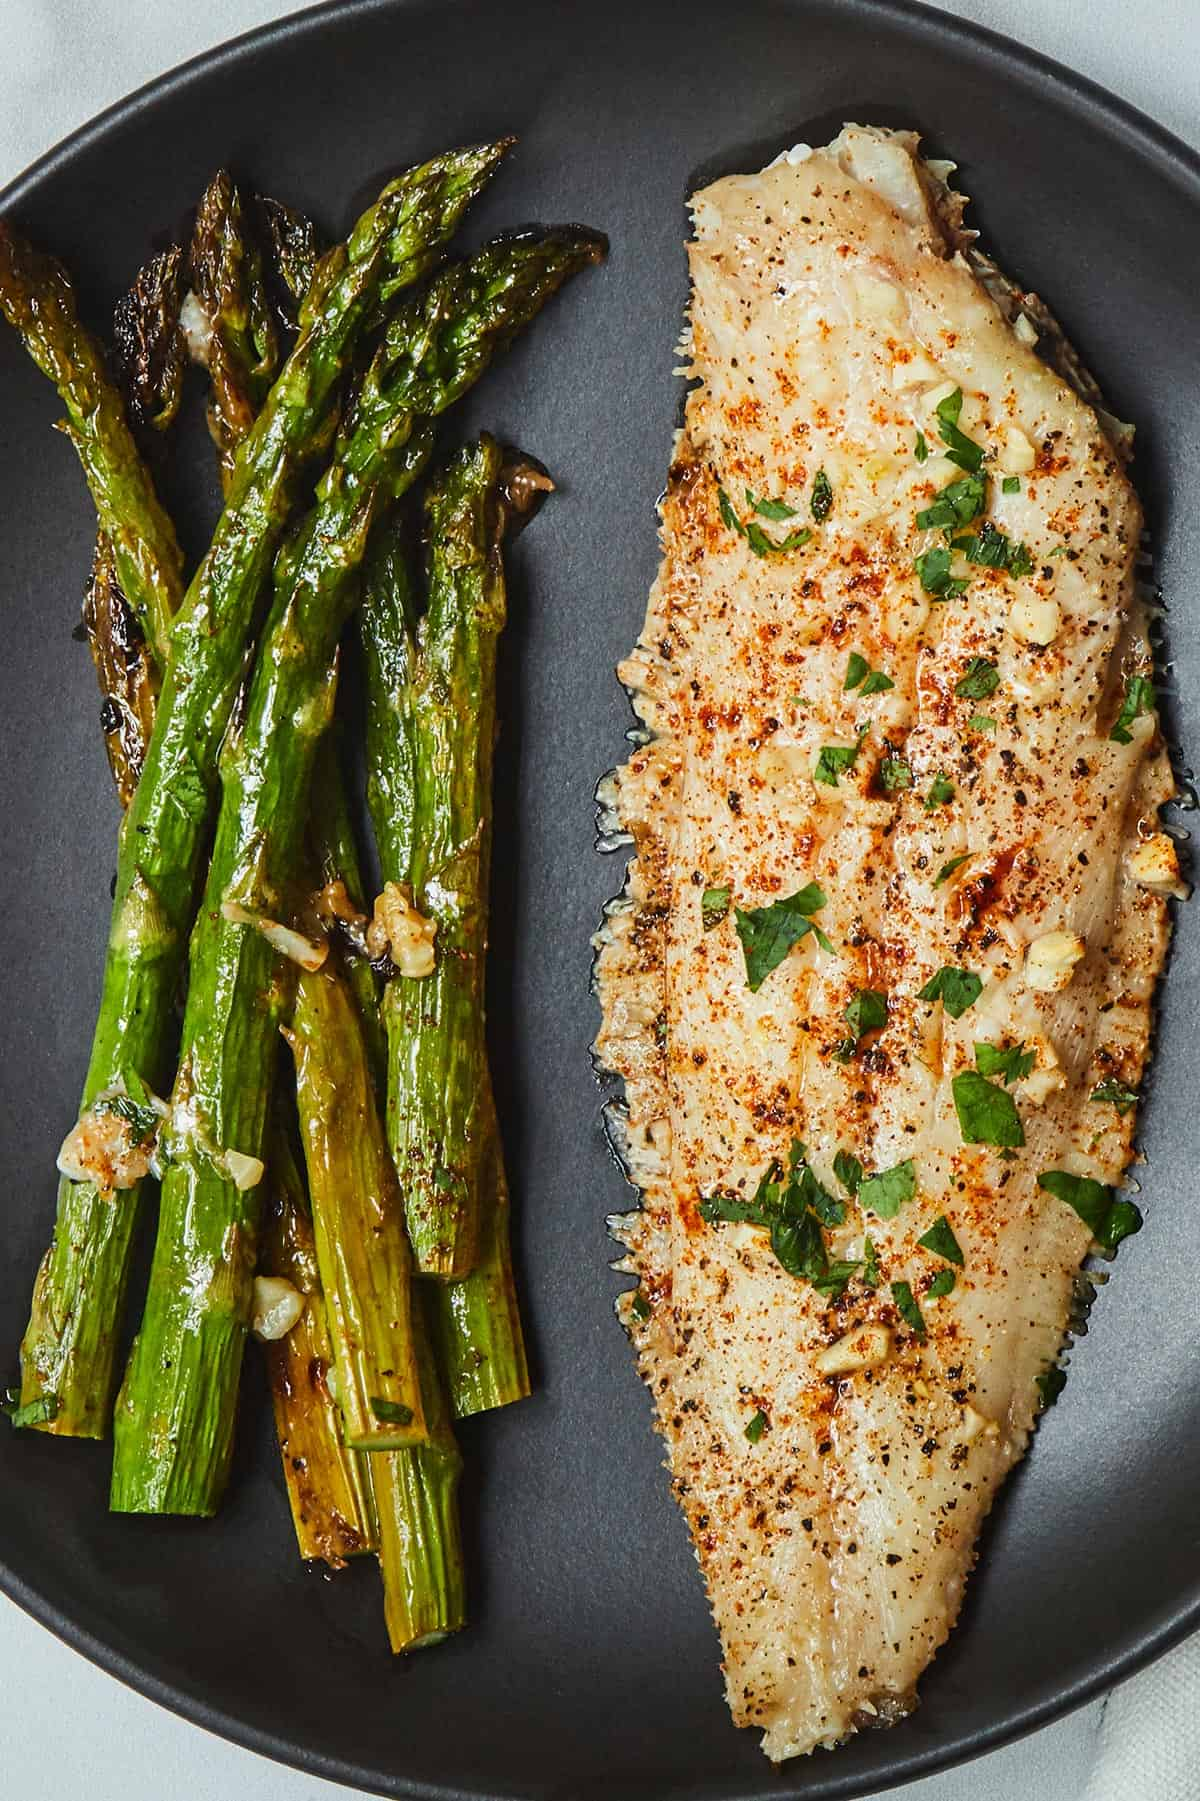 Sheet Pan Garlic Butter Sole with a side of asparagus on a black plate